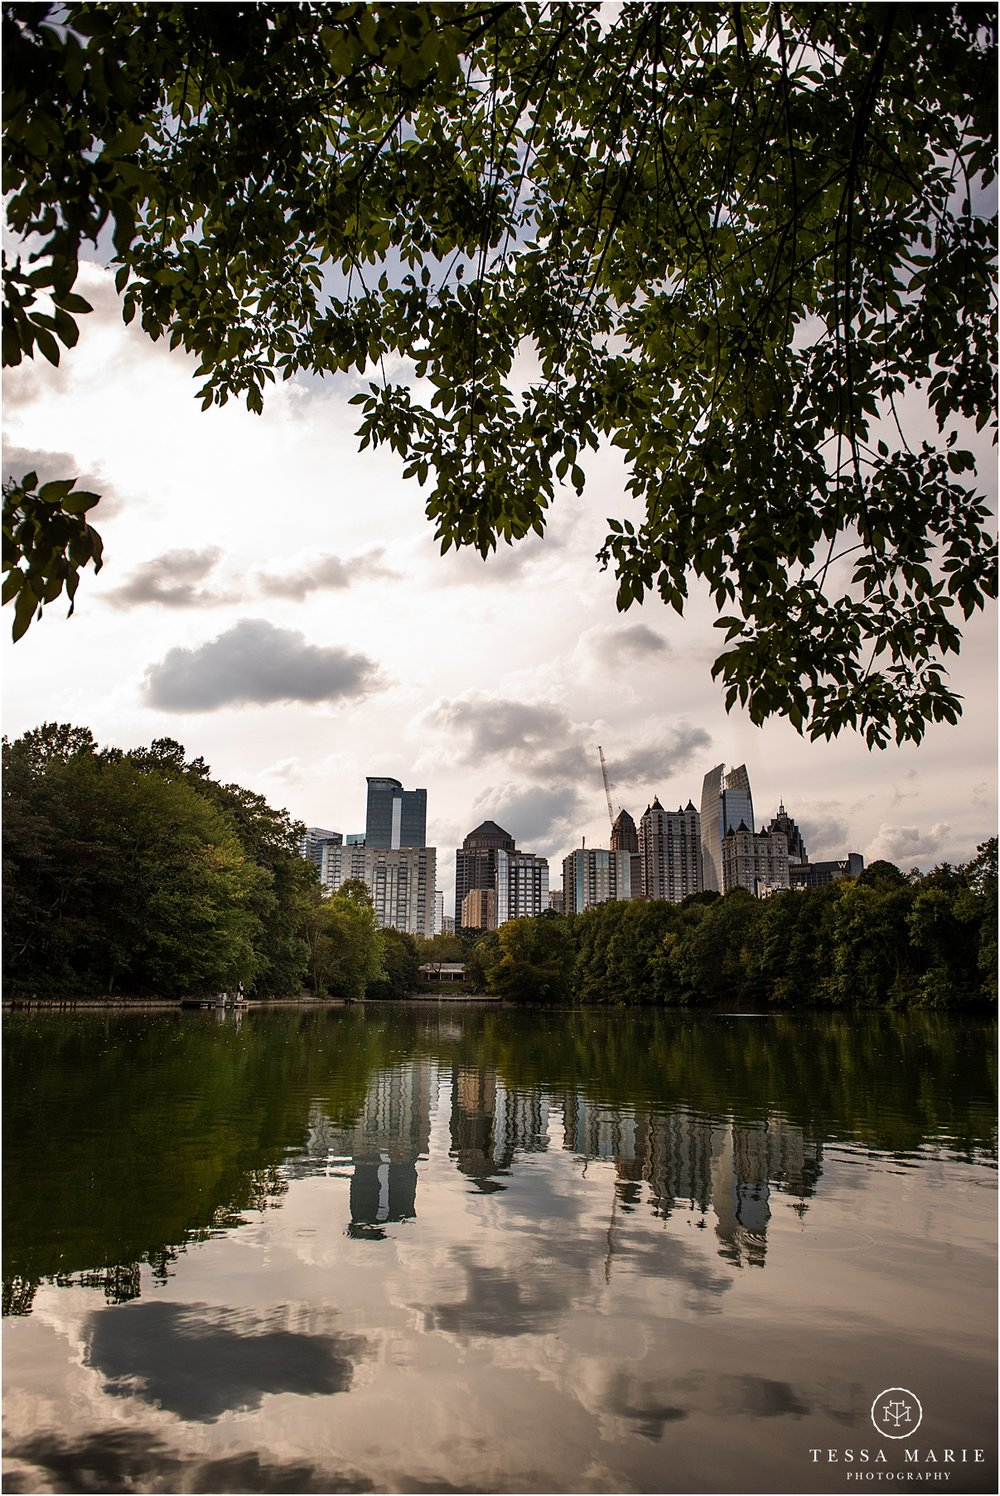 Tessa_marie_photography_wedding_photographer_engagement_pictures_piedmont_park_0032.jpg